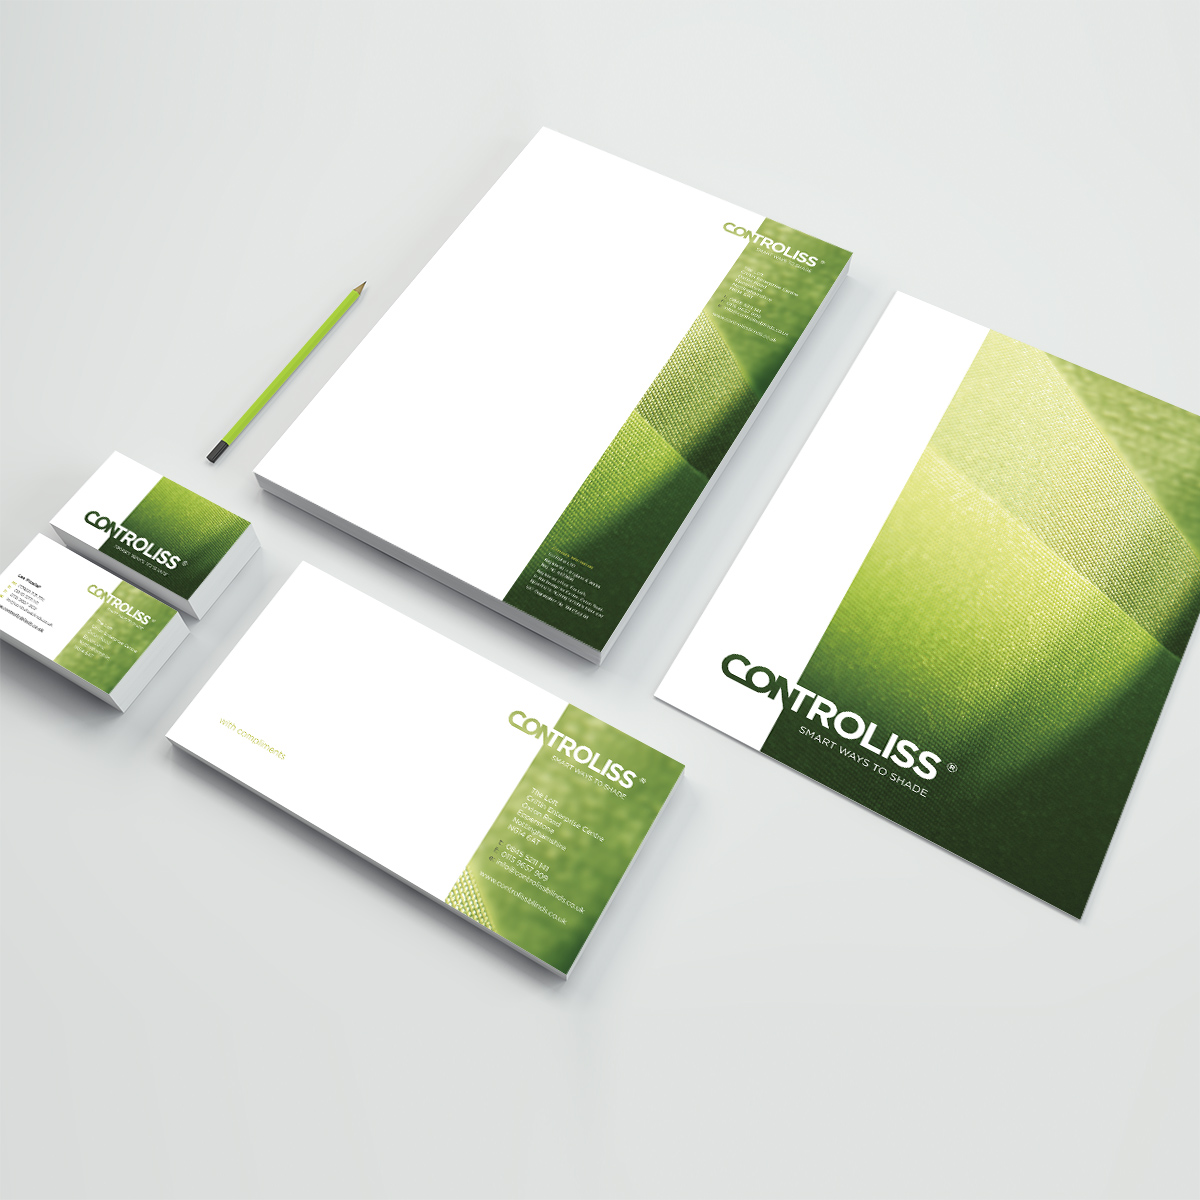 Controliss corporate stationery suite